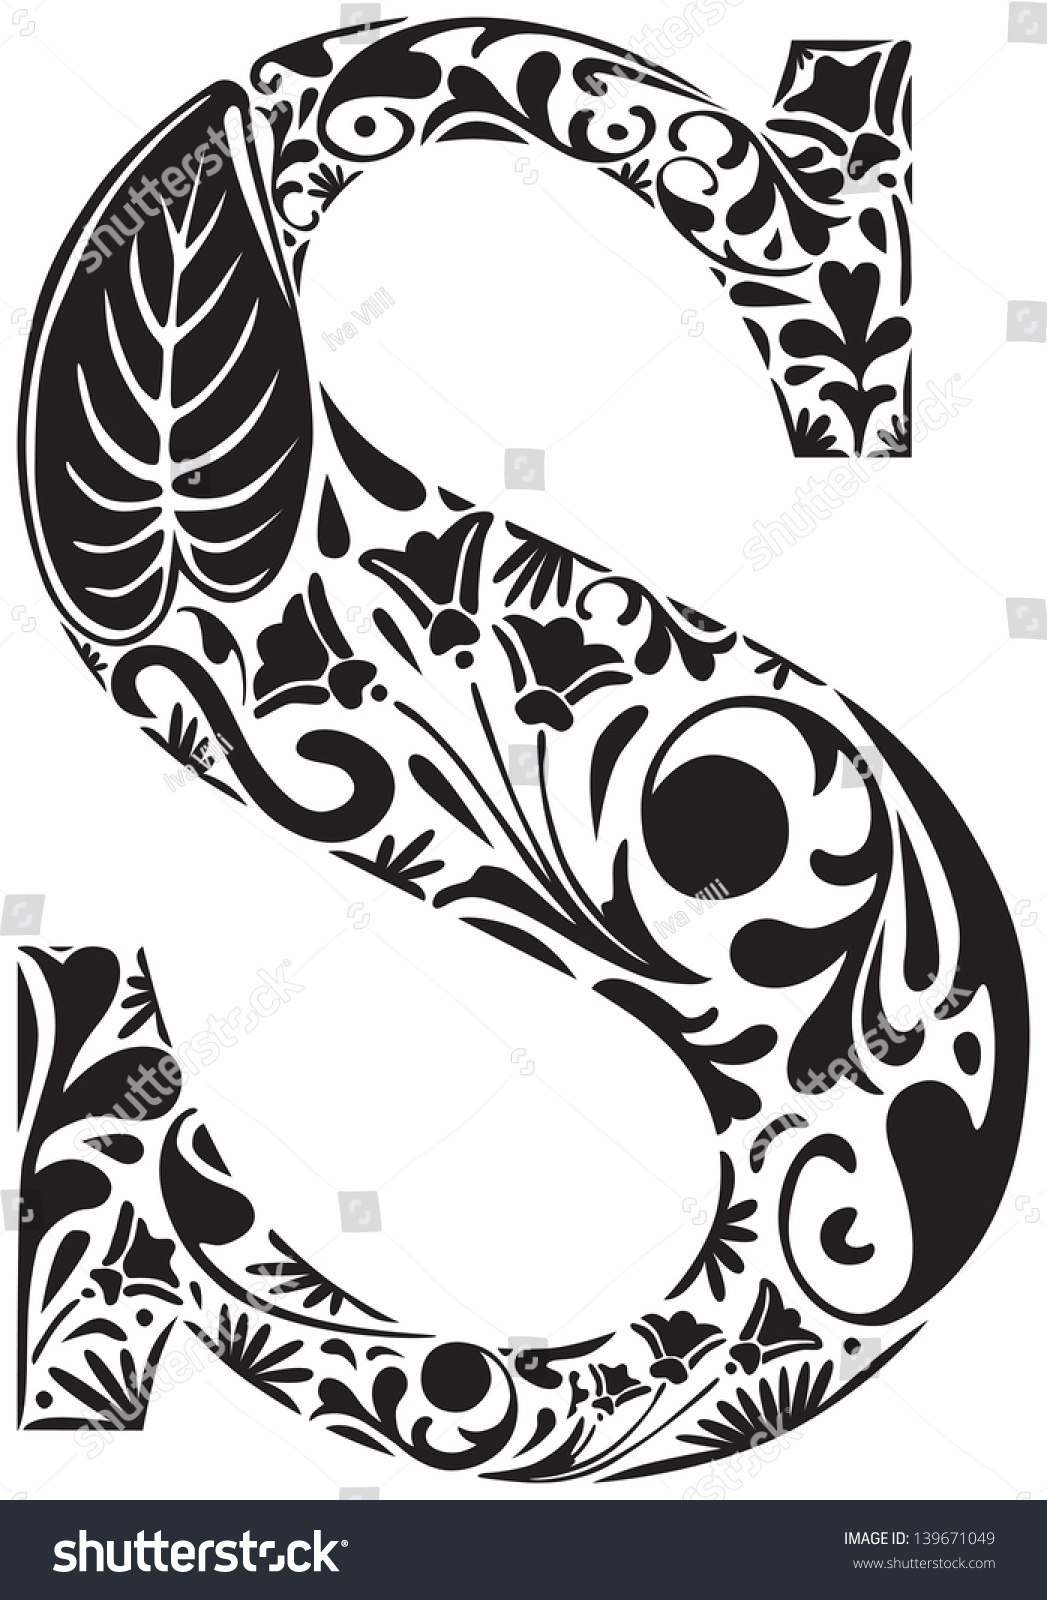 floral initial capital letter s stock vector 139671049 olive branch clipart transparent olive branch clip art borders free